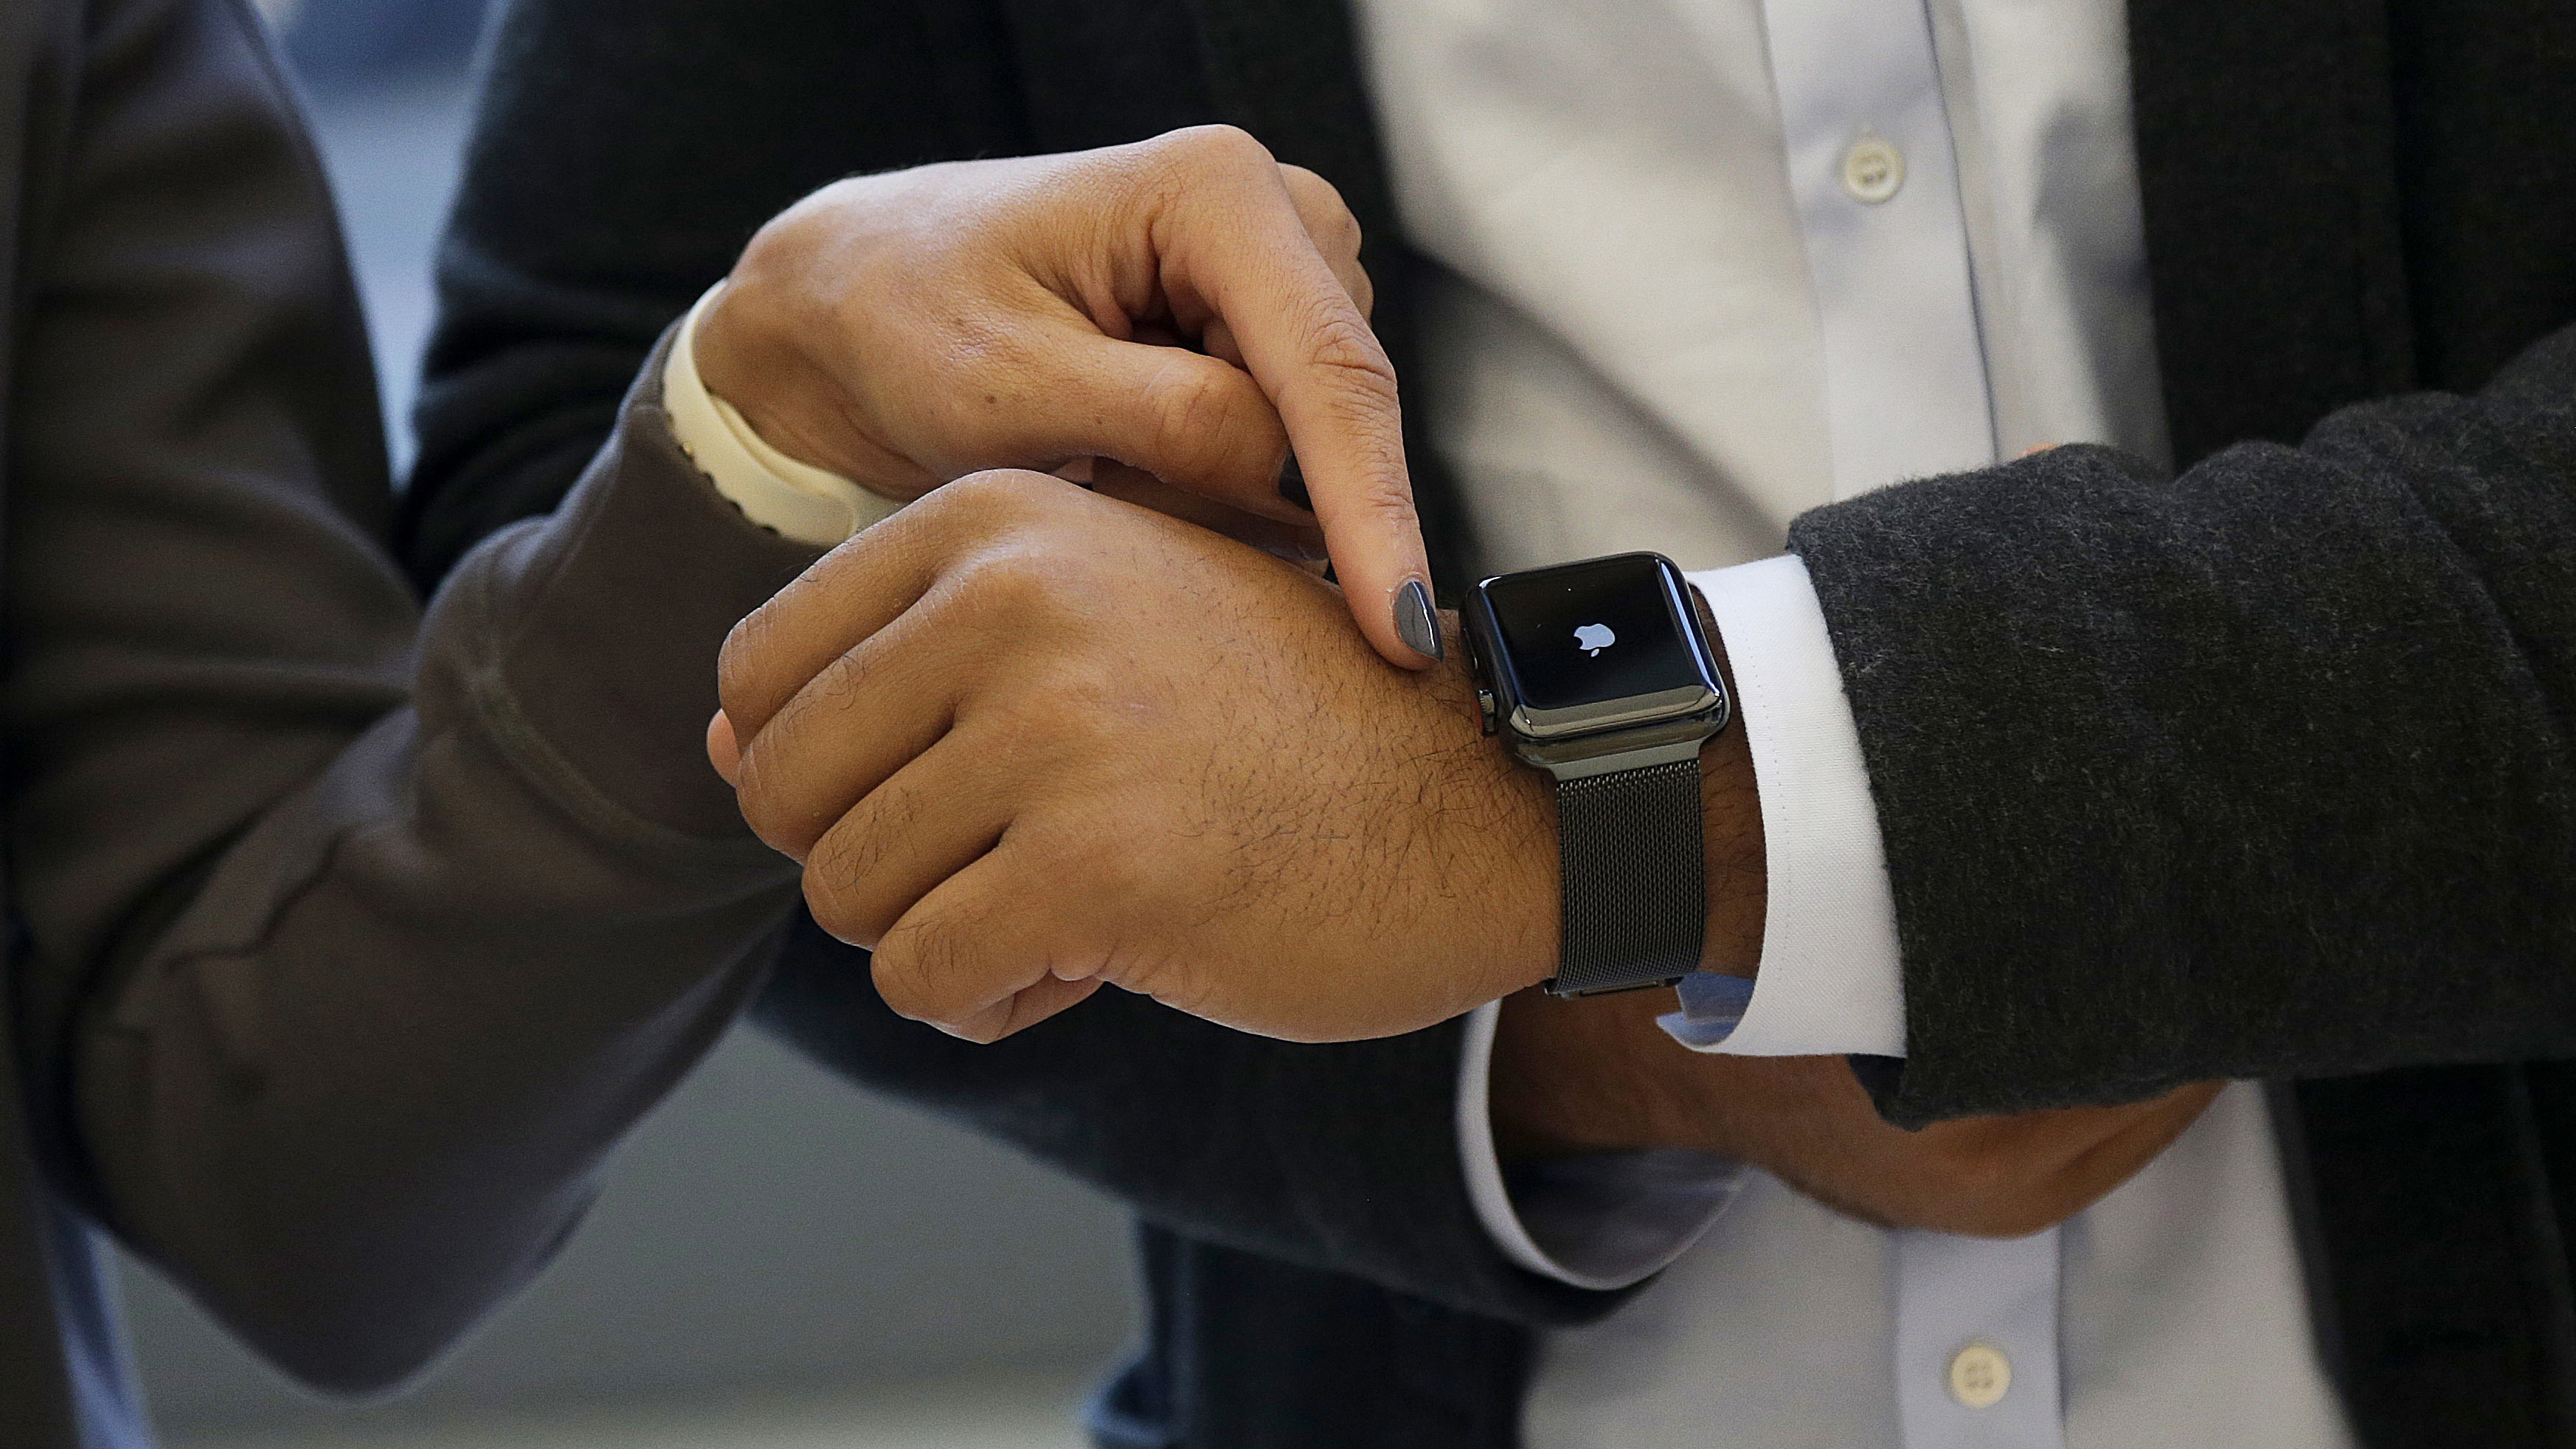 An Apple retail associate points toward a man's Apple Watch while assisting him at an Apple Store in San Francisco, Friday, Sept. 22, 2017. Many of Apple's newest products came out Friday. (AP Photo/Jeff Chiu)